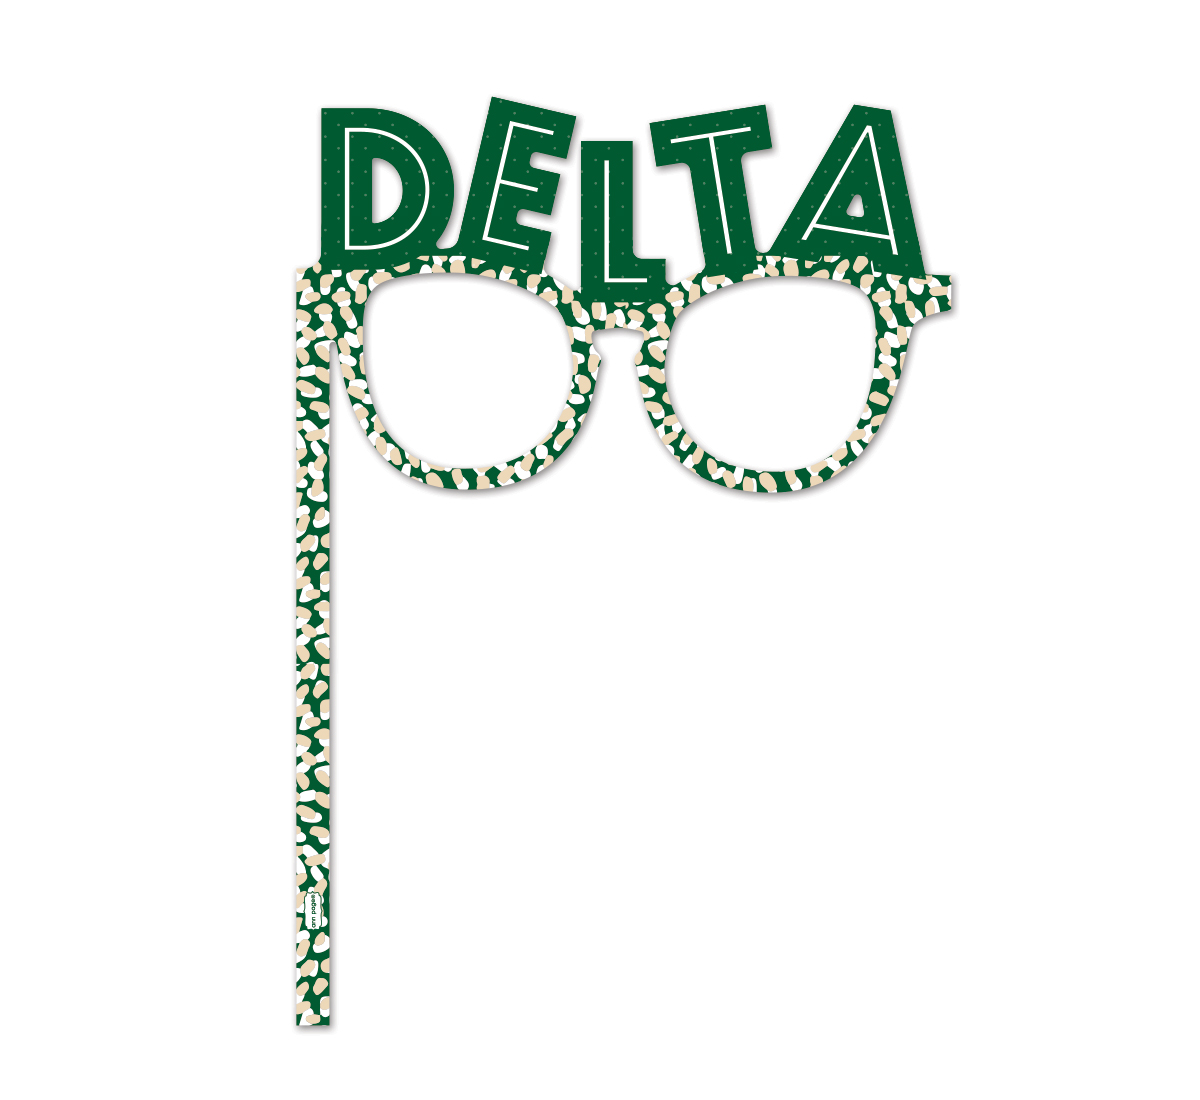 Image For Delta Photo Prop